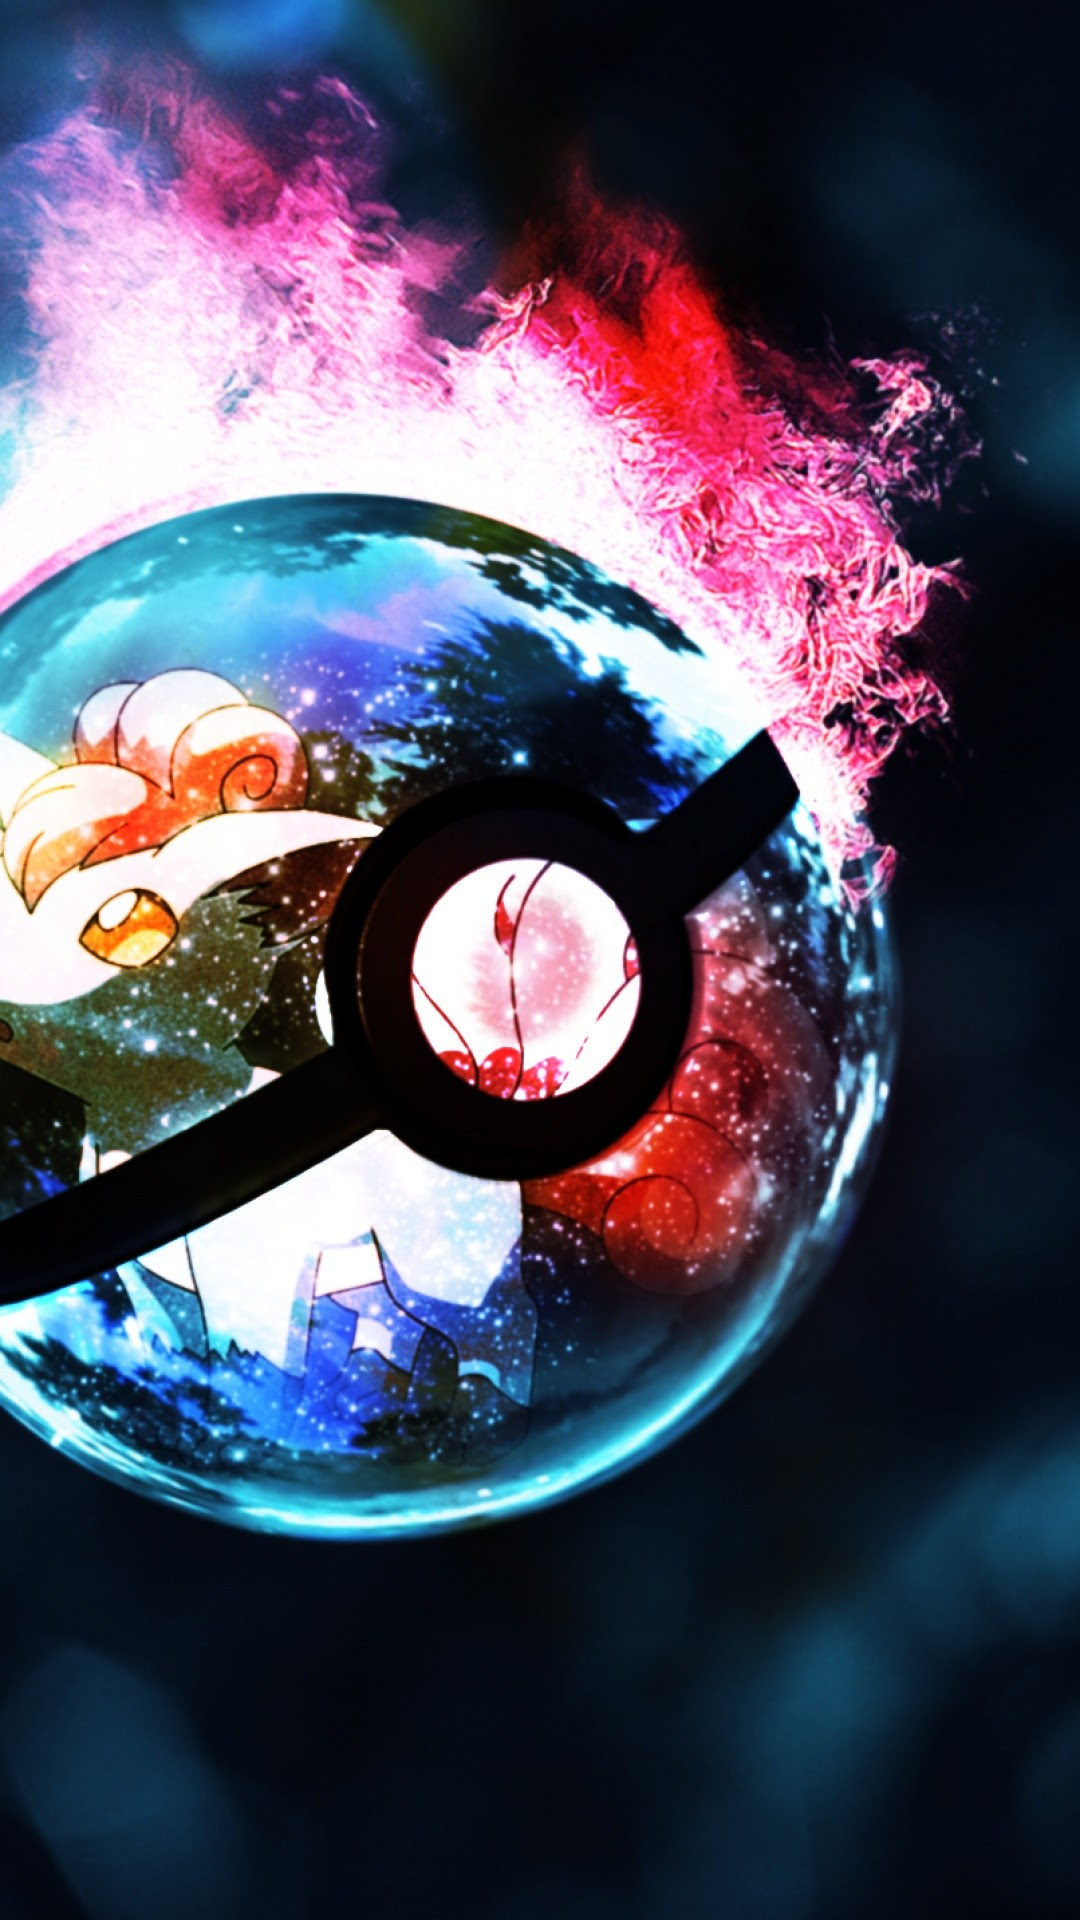 Cool Pokemon Wallpapers HD (71+ images)